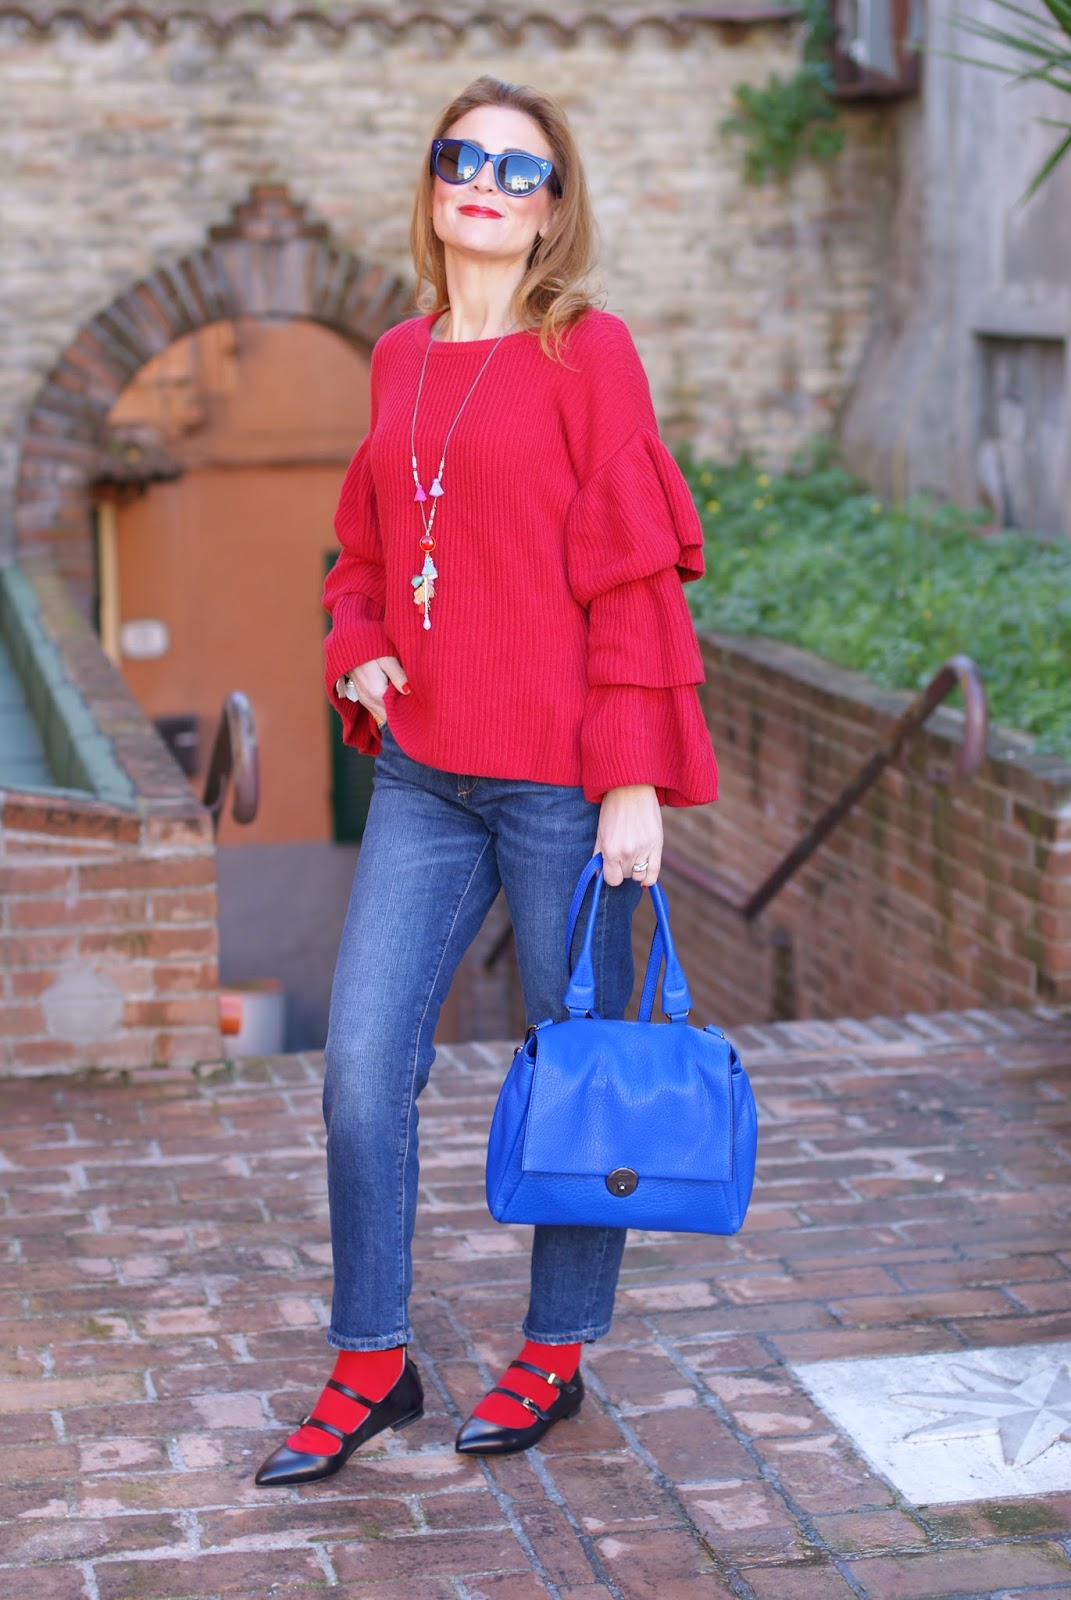 Sergio Amaranti flats and red sweater on Fashion and Cookies fashion blog, fashion blogger style